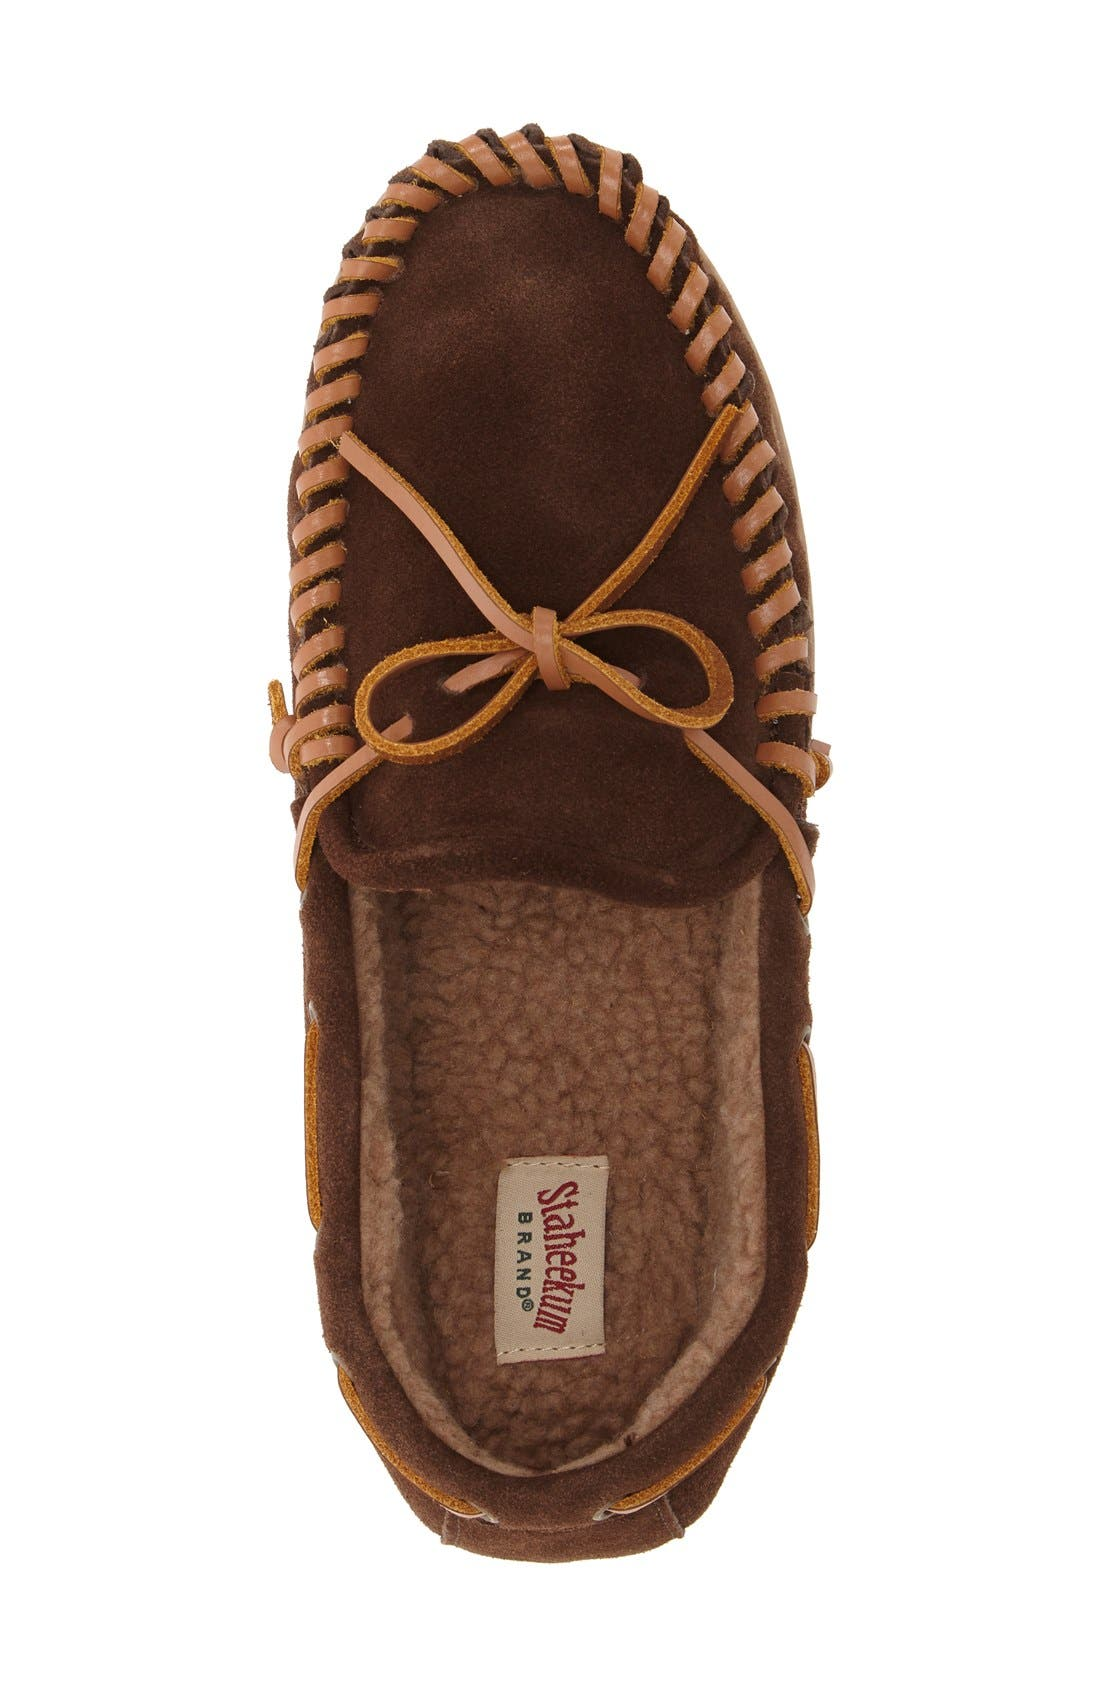 'Courier' Moccasin Slipper,                             Alternate thumbnail 3, color,                             Chocolate Suede